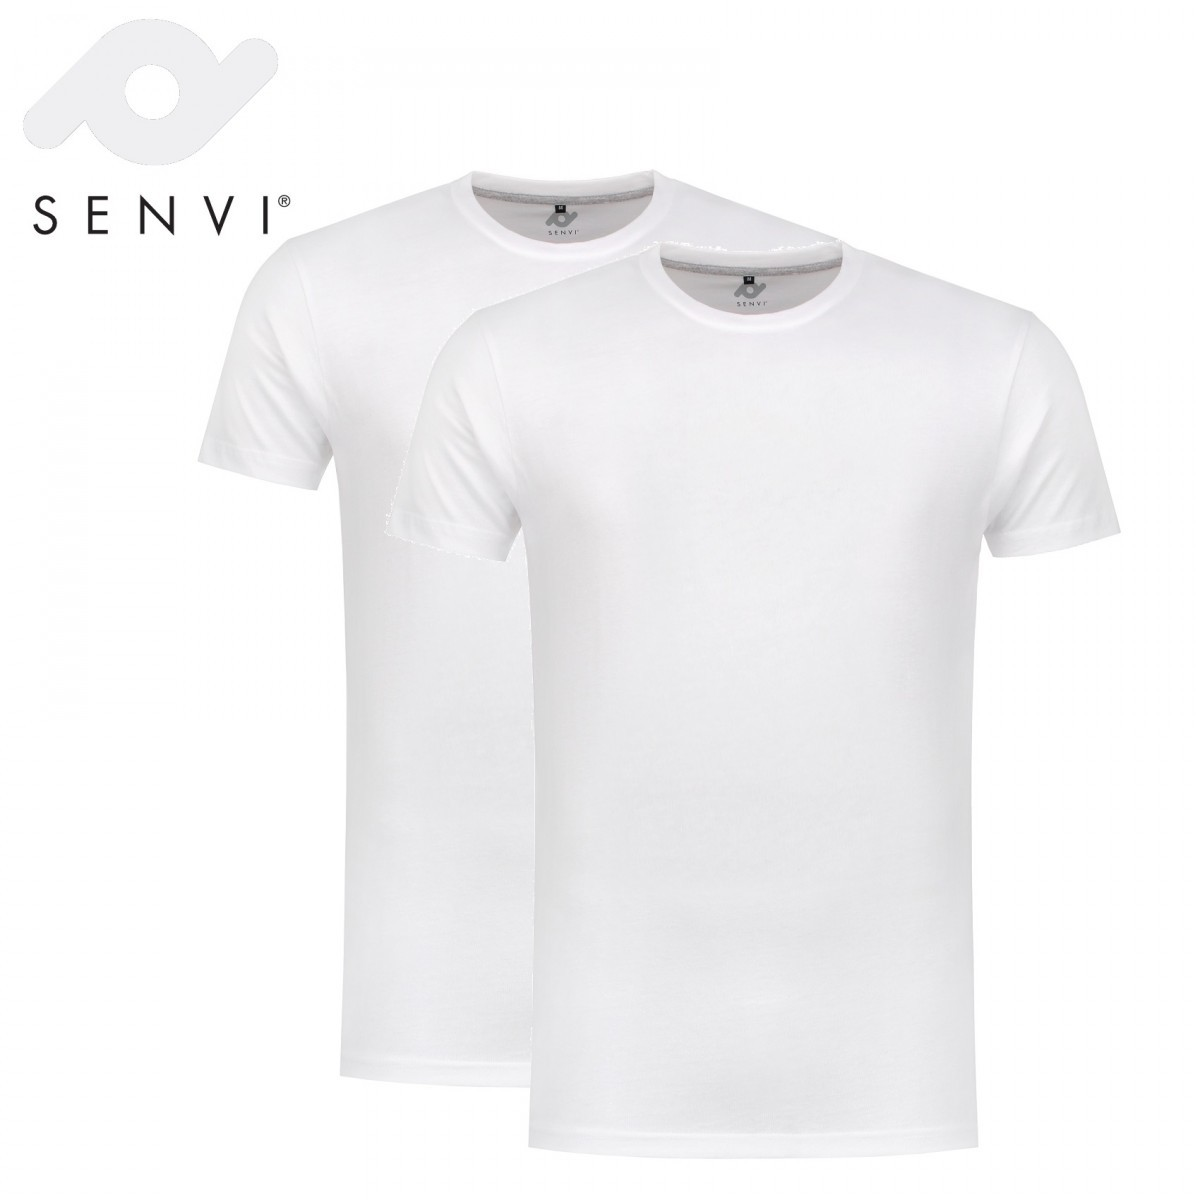 Senvi Basic T-Shirt Wit 2 Pack Maat M